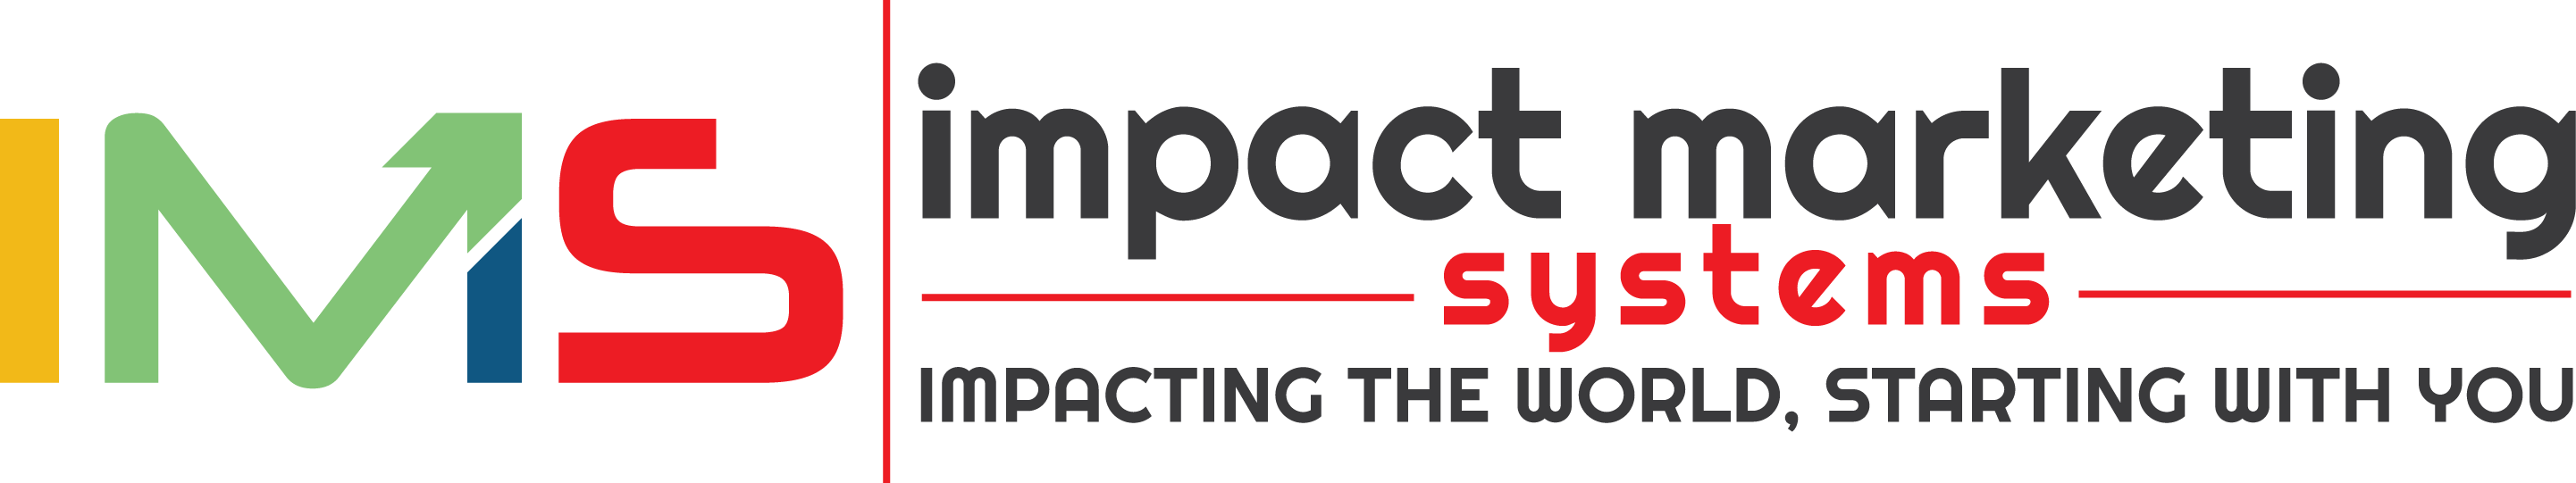 Impact Marketing Systems